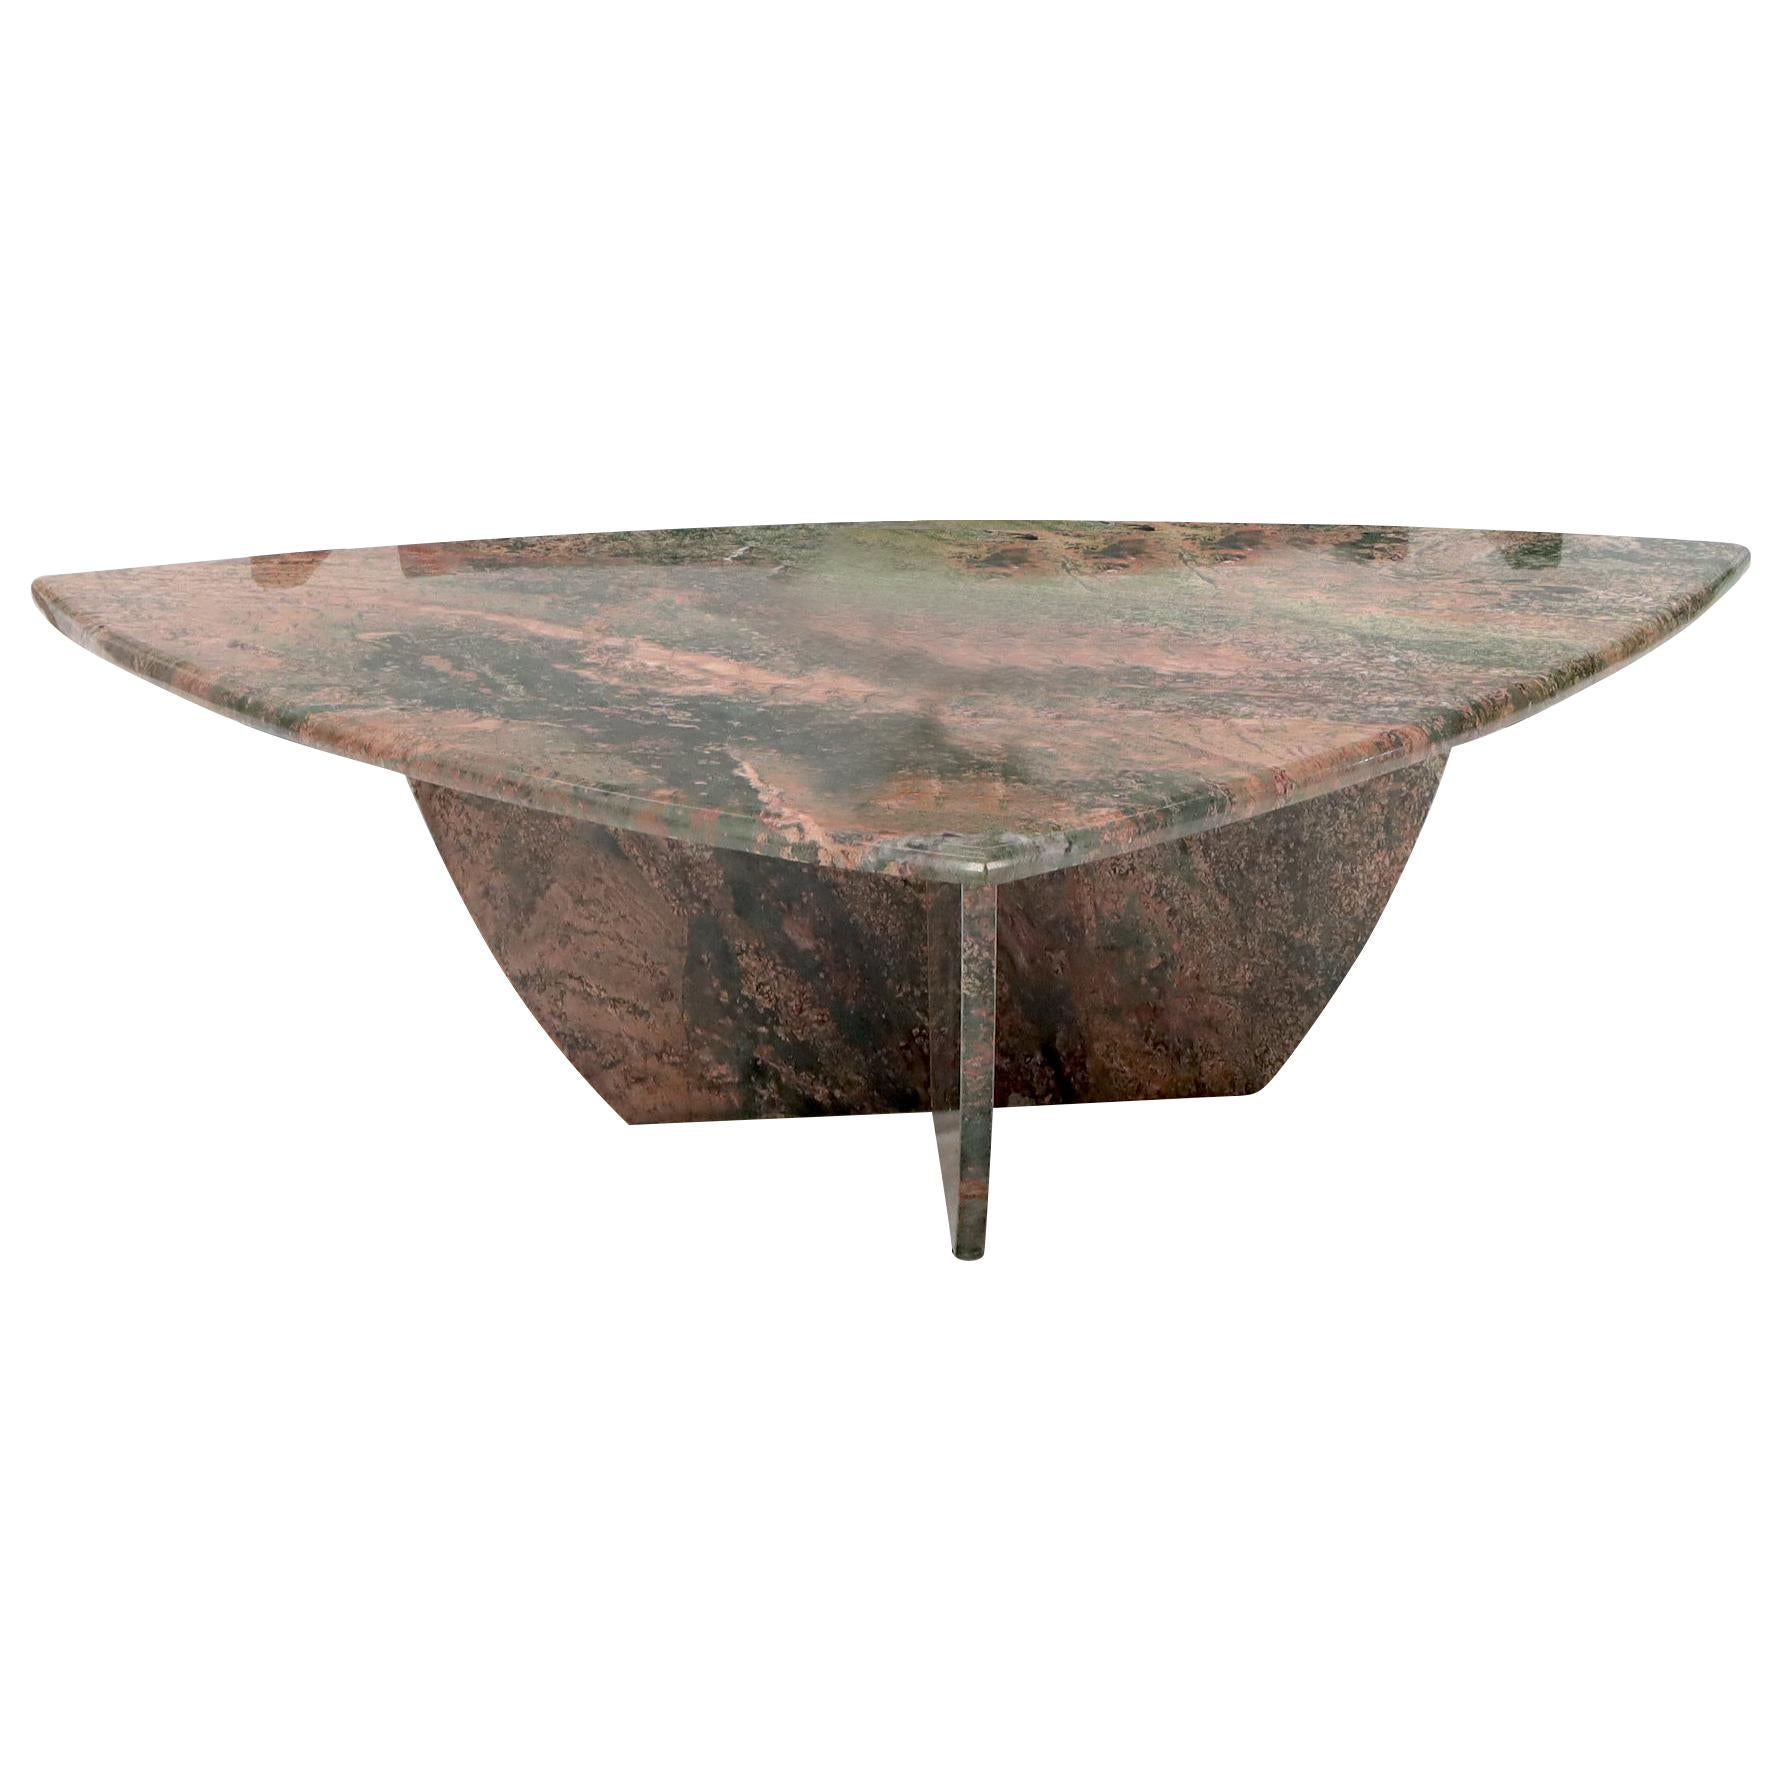 Rounded Triangle Shape Large Solid Marble Coffee Table